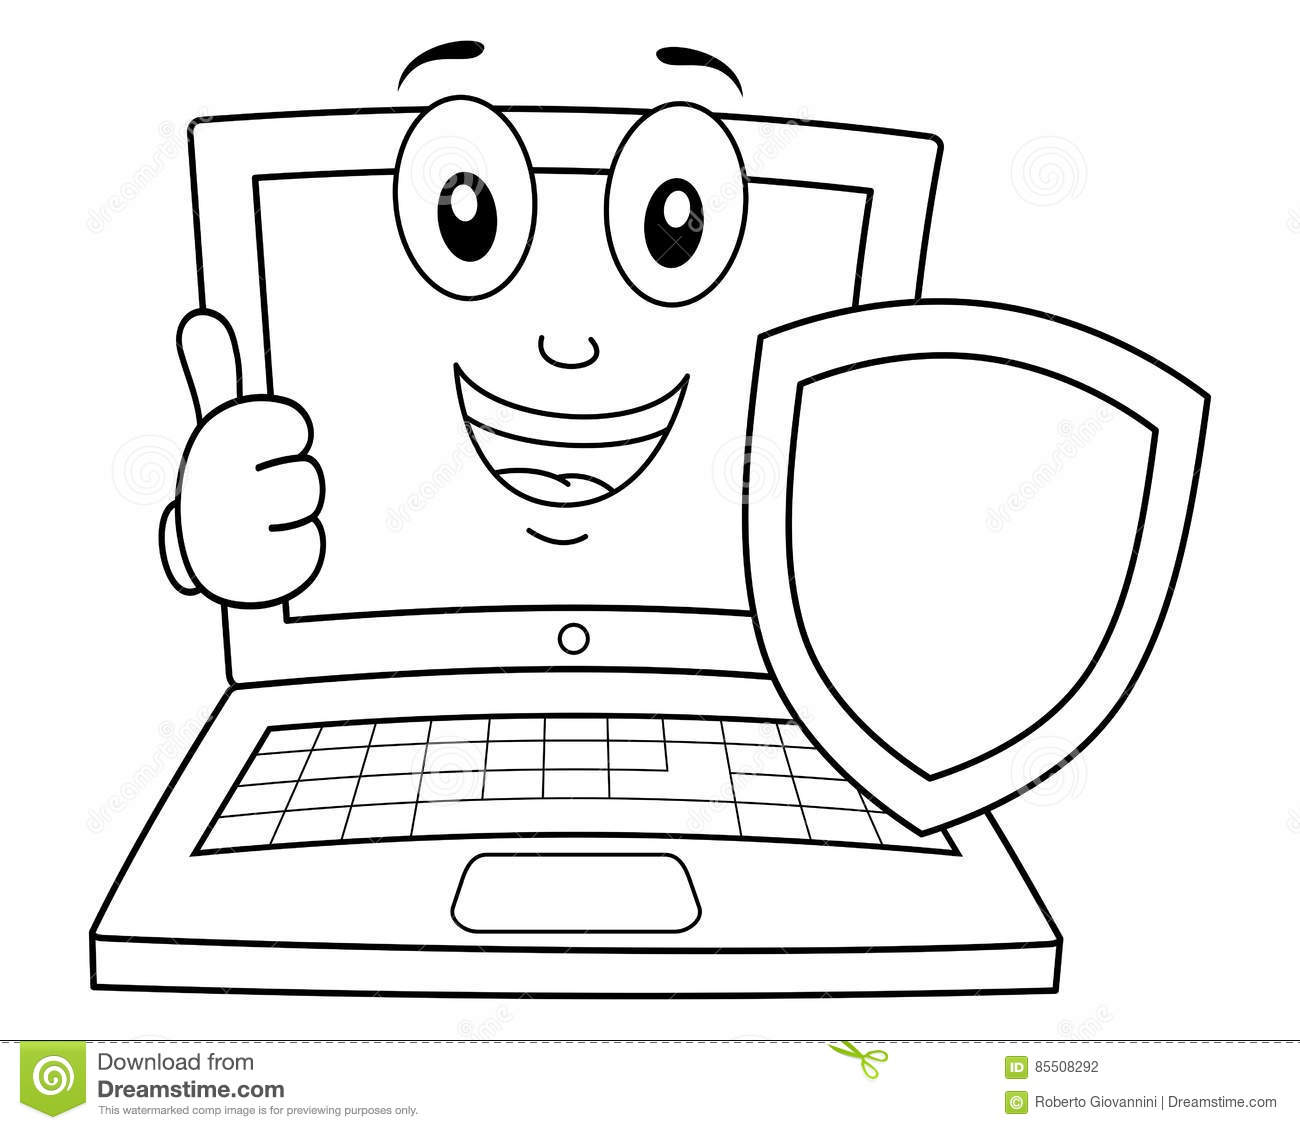 Coloring Laptop Or Notebook With Shield Stock Vector - Illustration ...